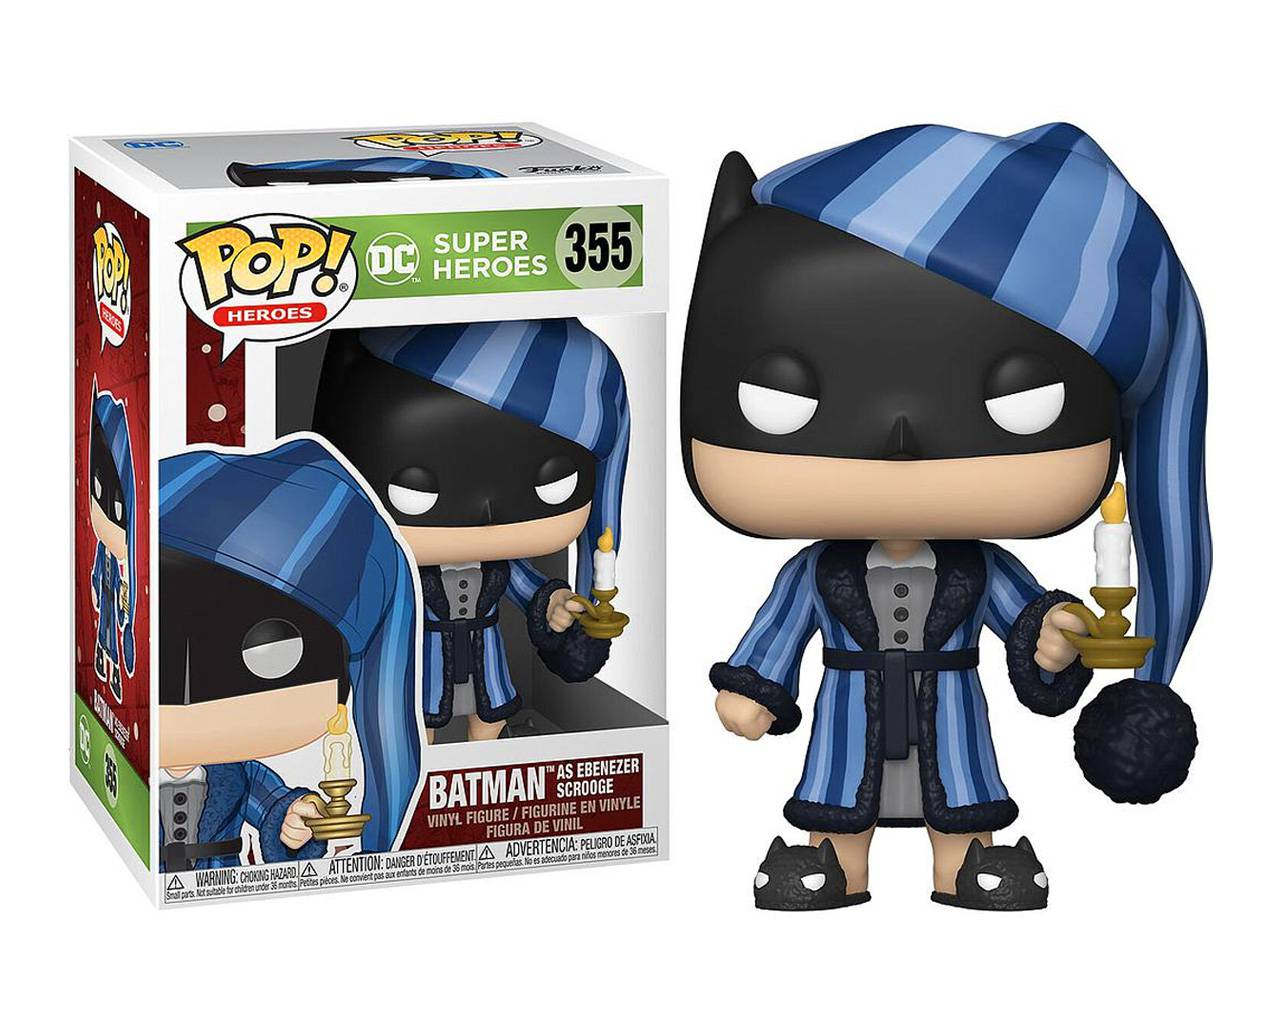 Batman as Ebenezer Scrooge Pop! Vinyl